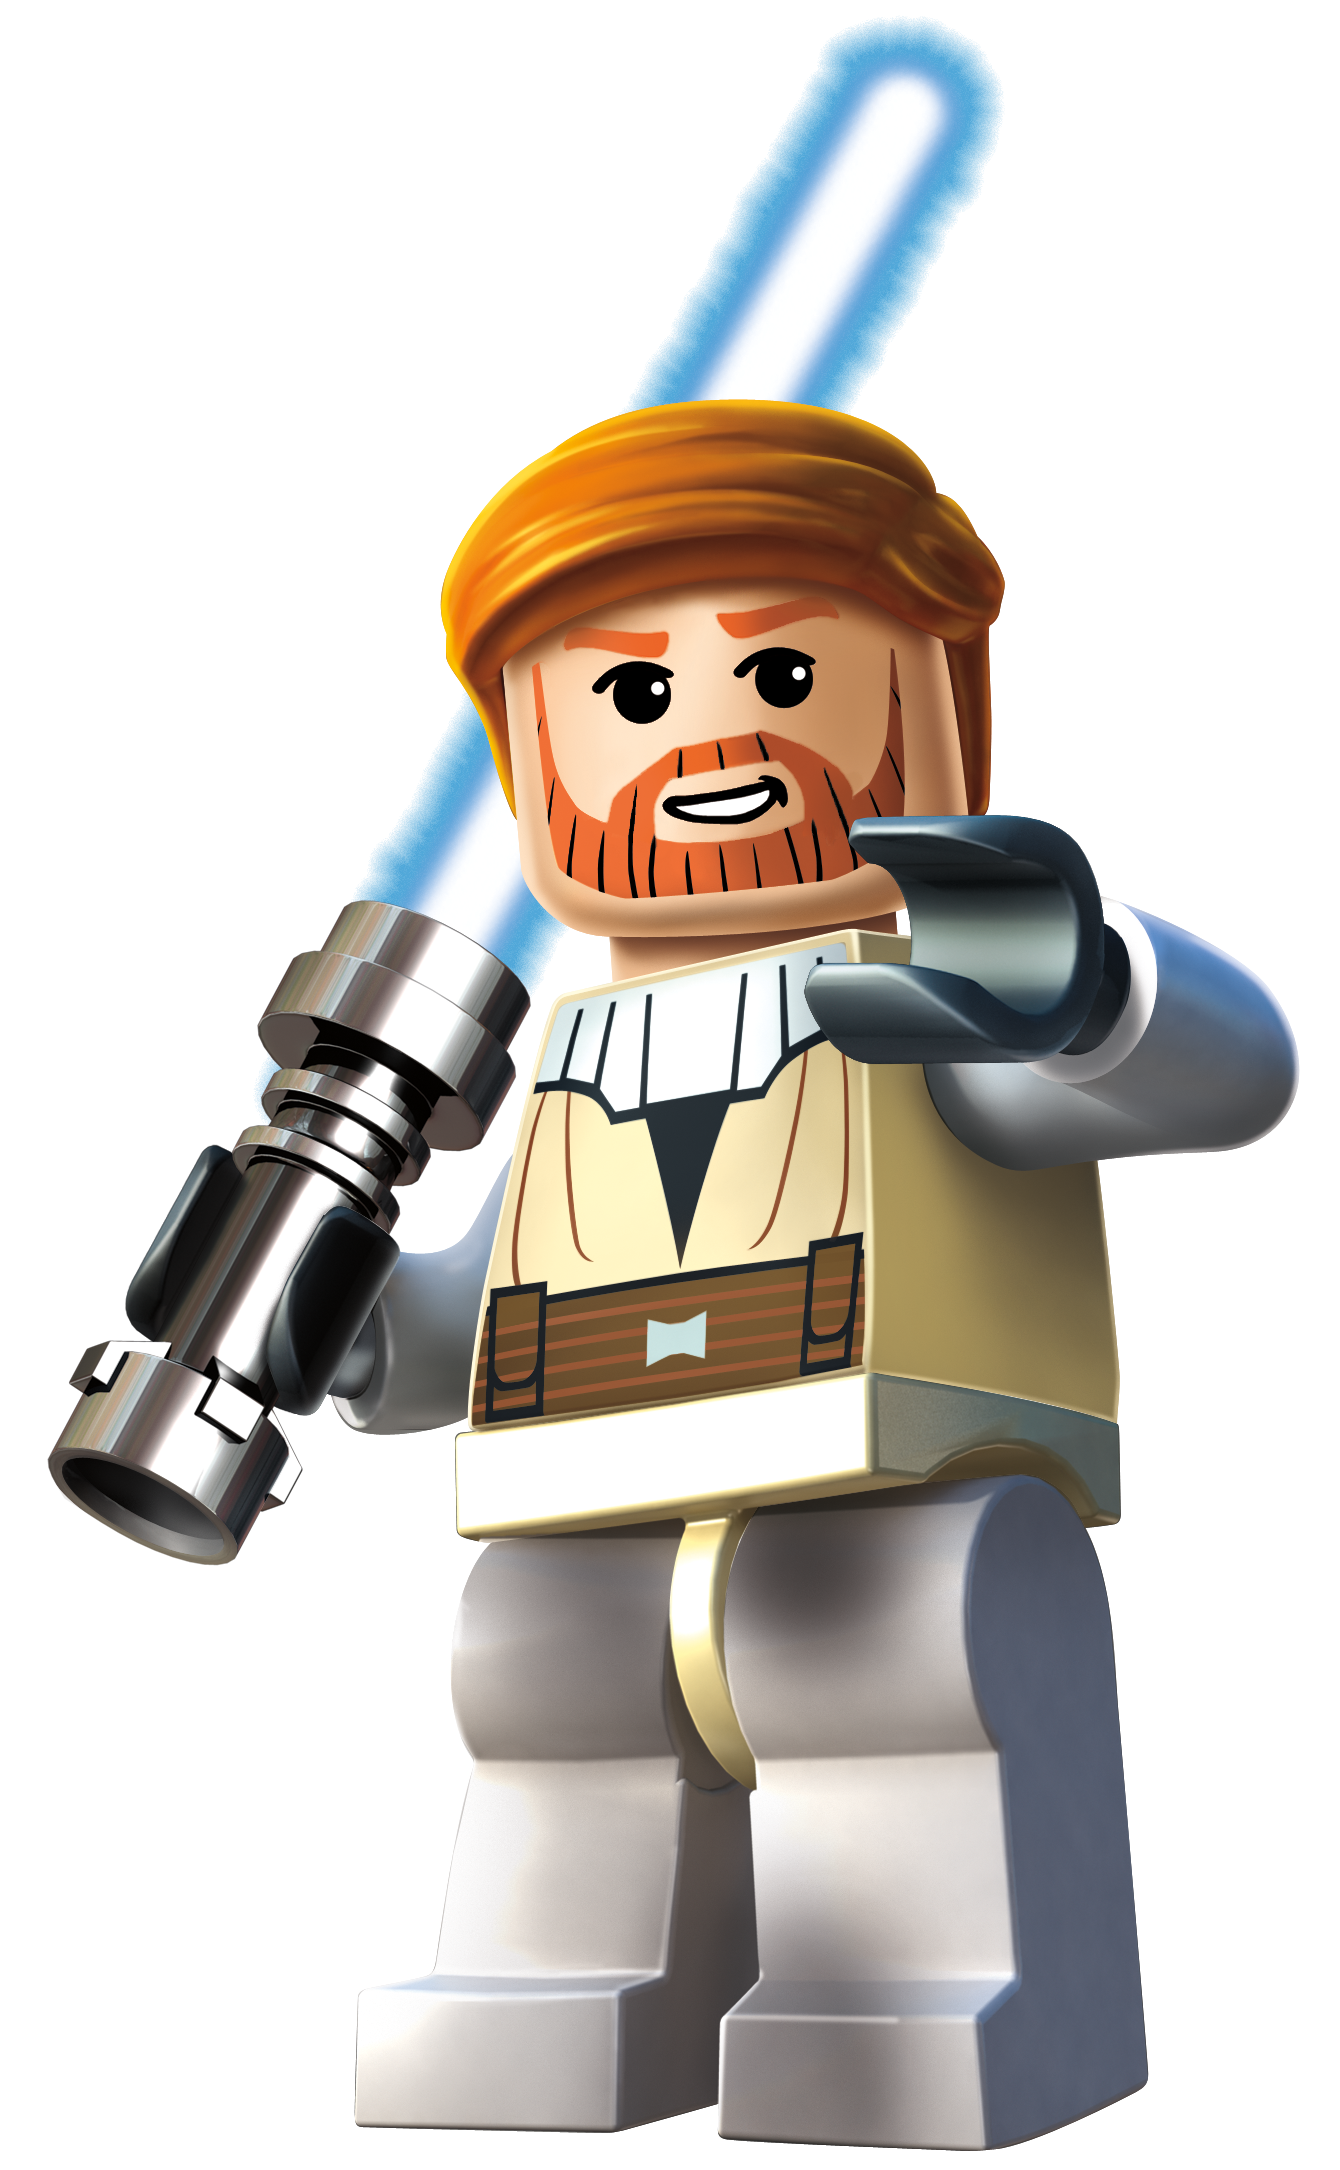 Episode ii sticker custom stickers lego decals obi wan obiwan lsw3 png